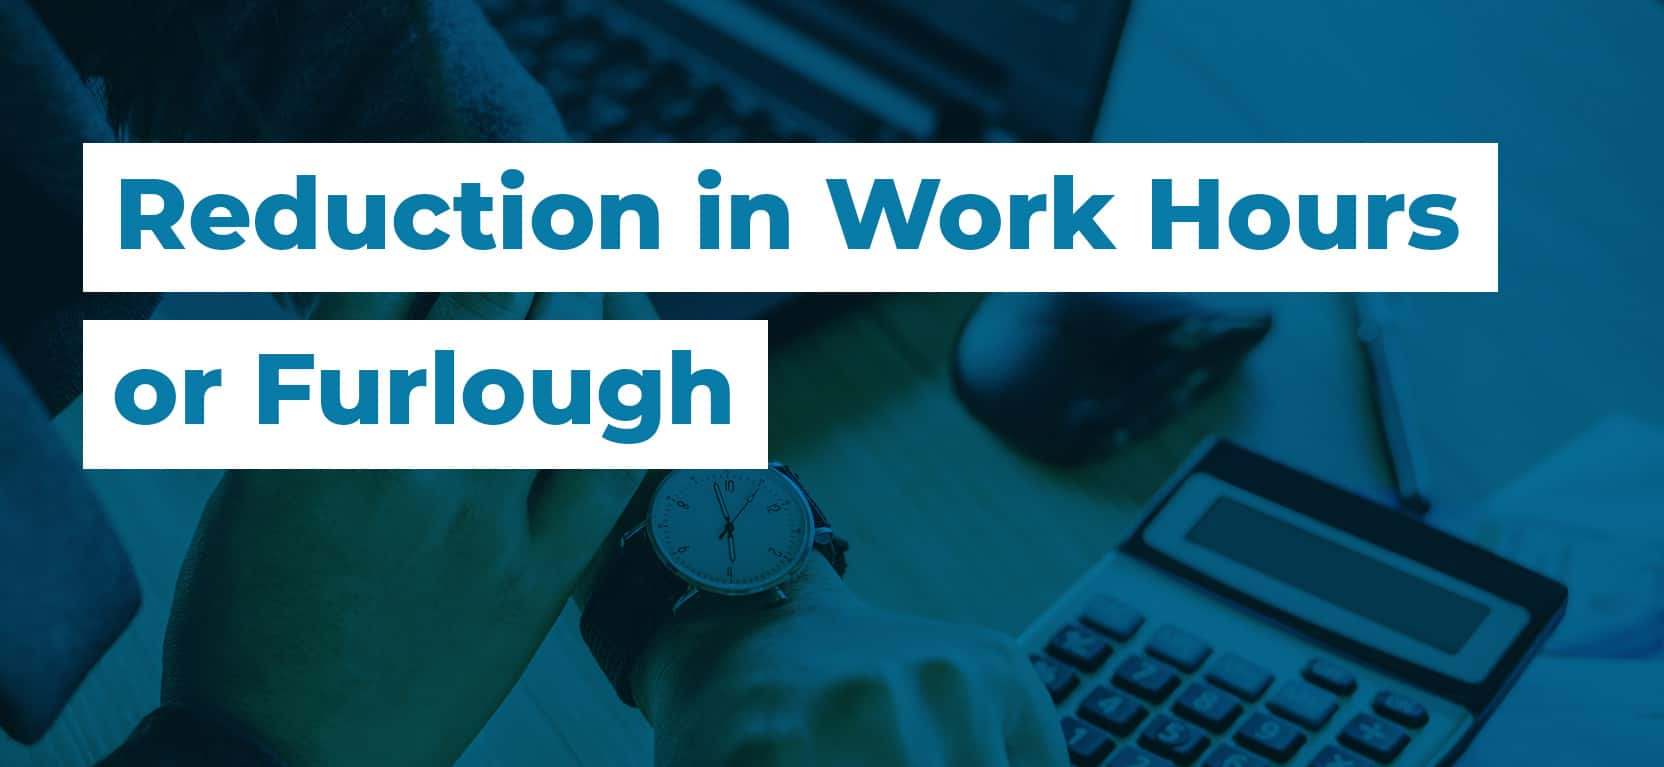 01 Reduction in Work Hours or Furlough3